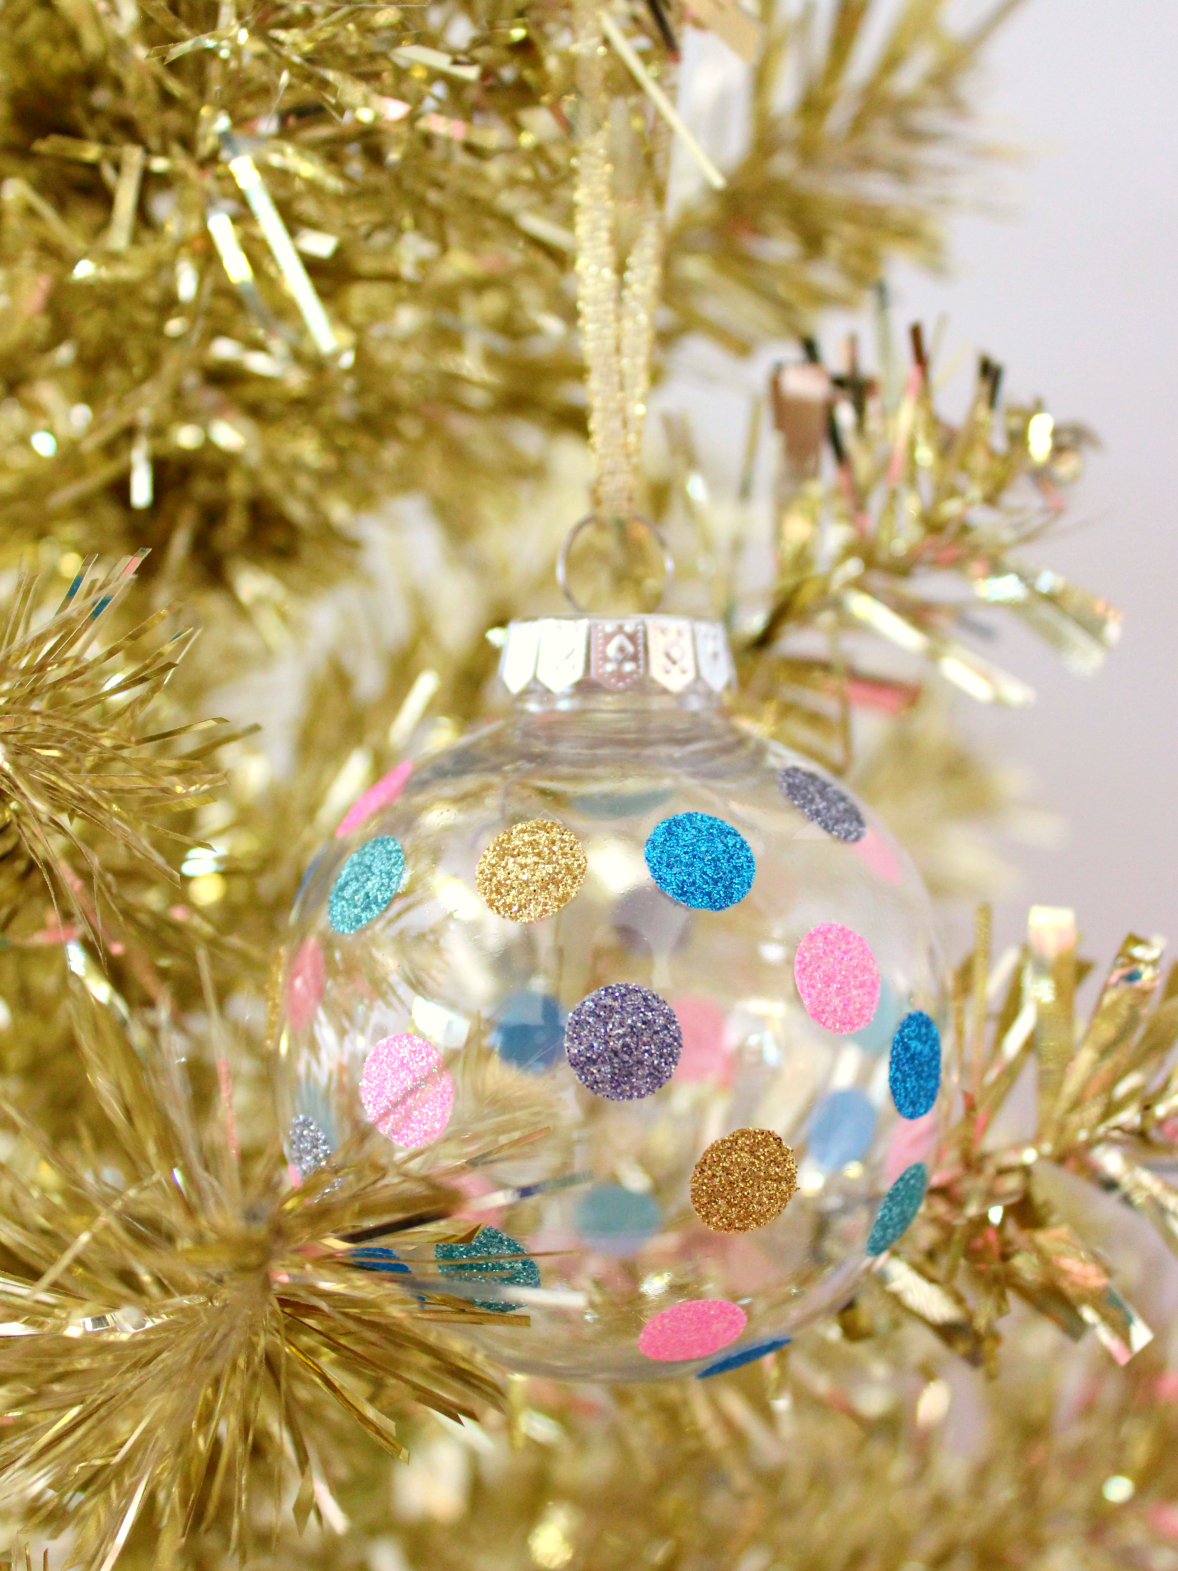 DIY GLITTER WASHI TAPE BAUBLES